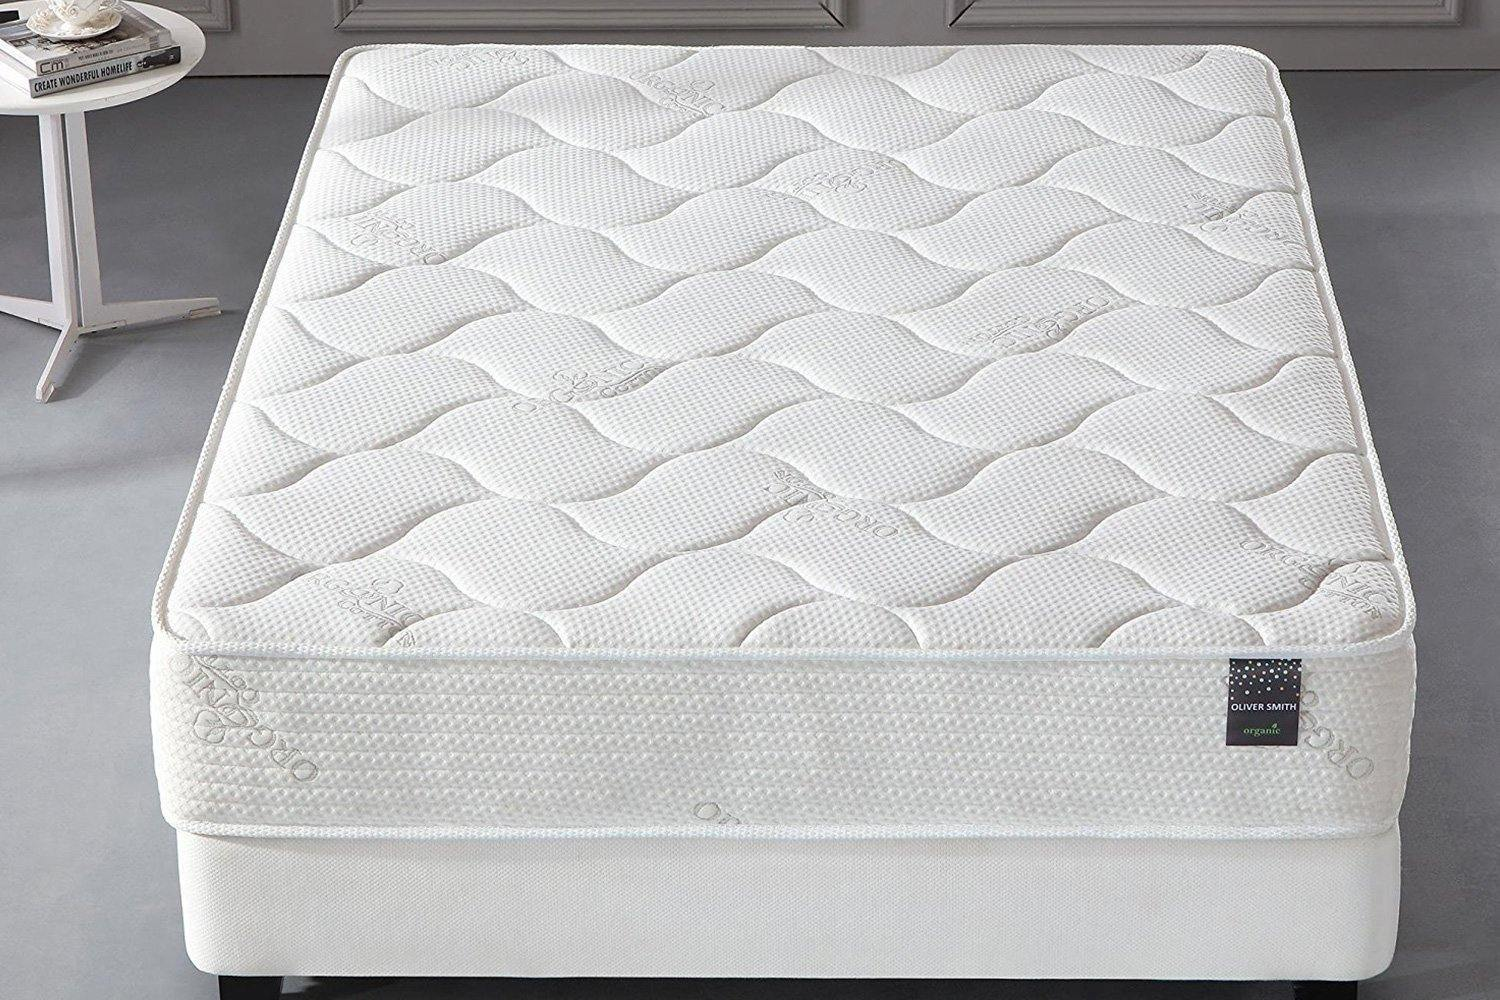 sleep with of the on reviews for mattress review organicnewsroom best unique bed helix side offers comfort newsroom rejuvenating mattresses zones organic comforter each